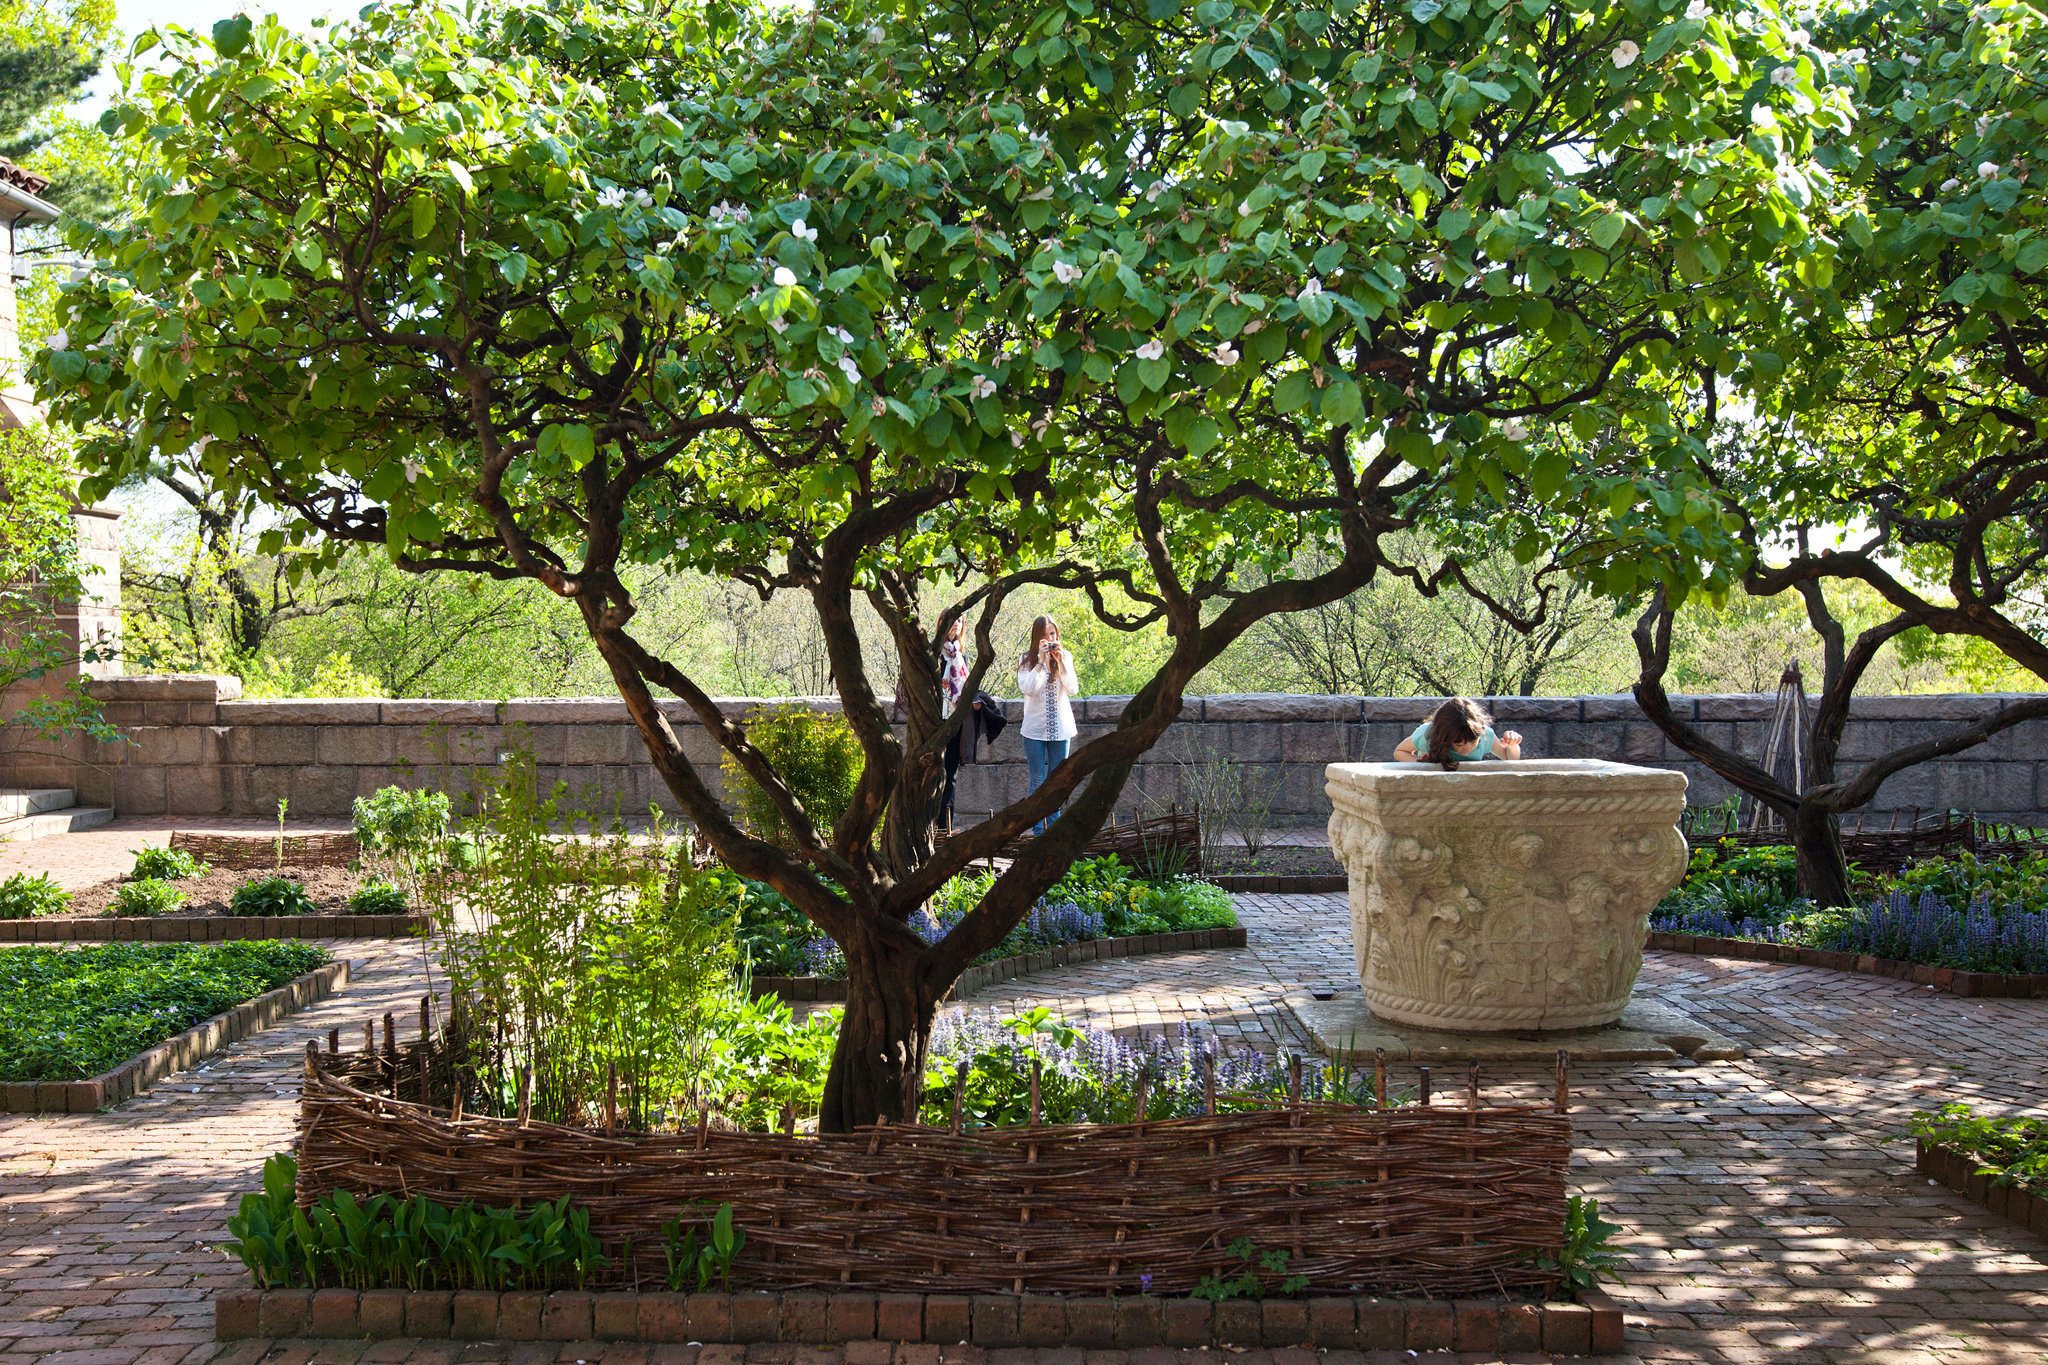 Garden Trees In Praise Of The Misunderstood Quince Tree The New York Times